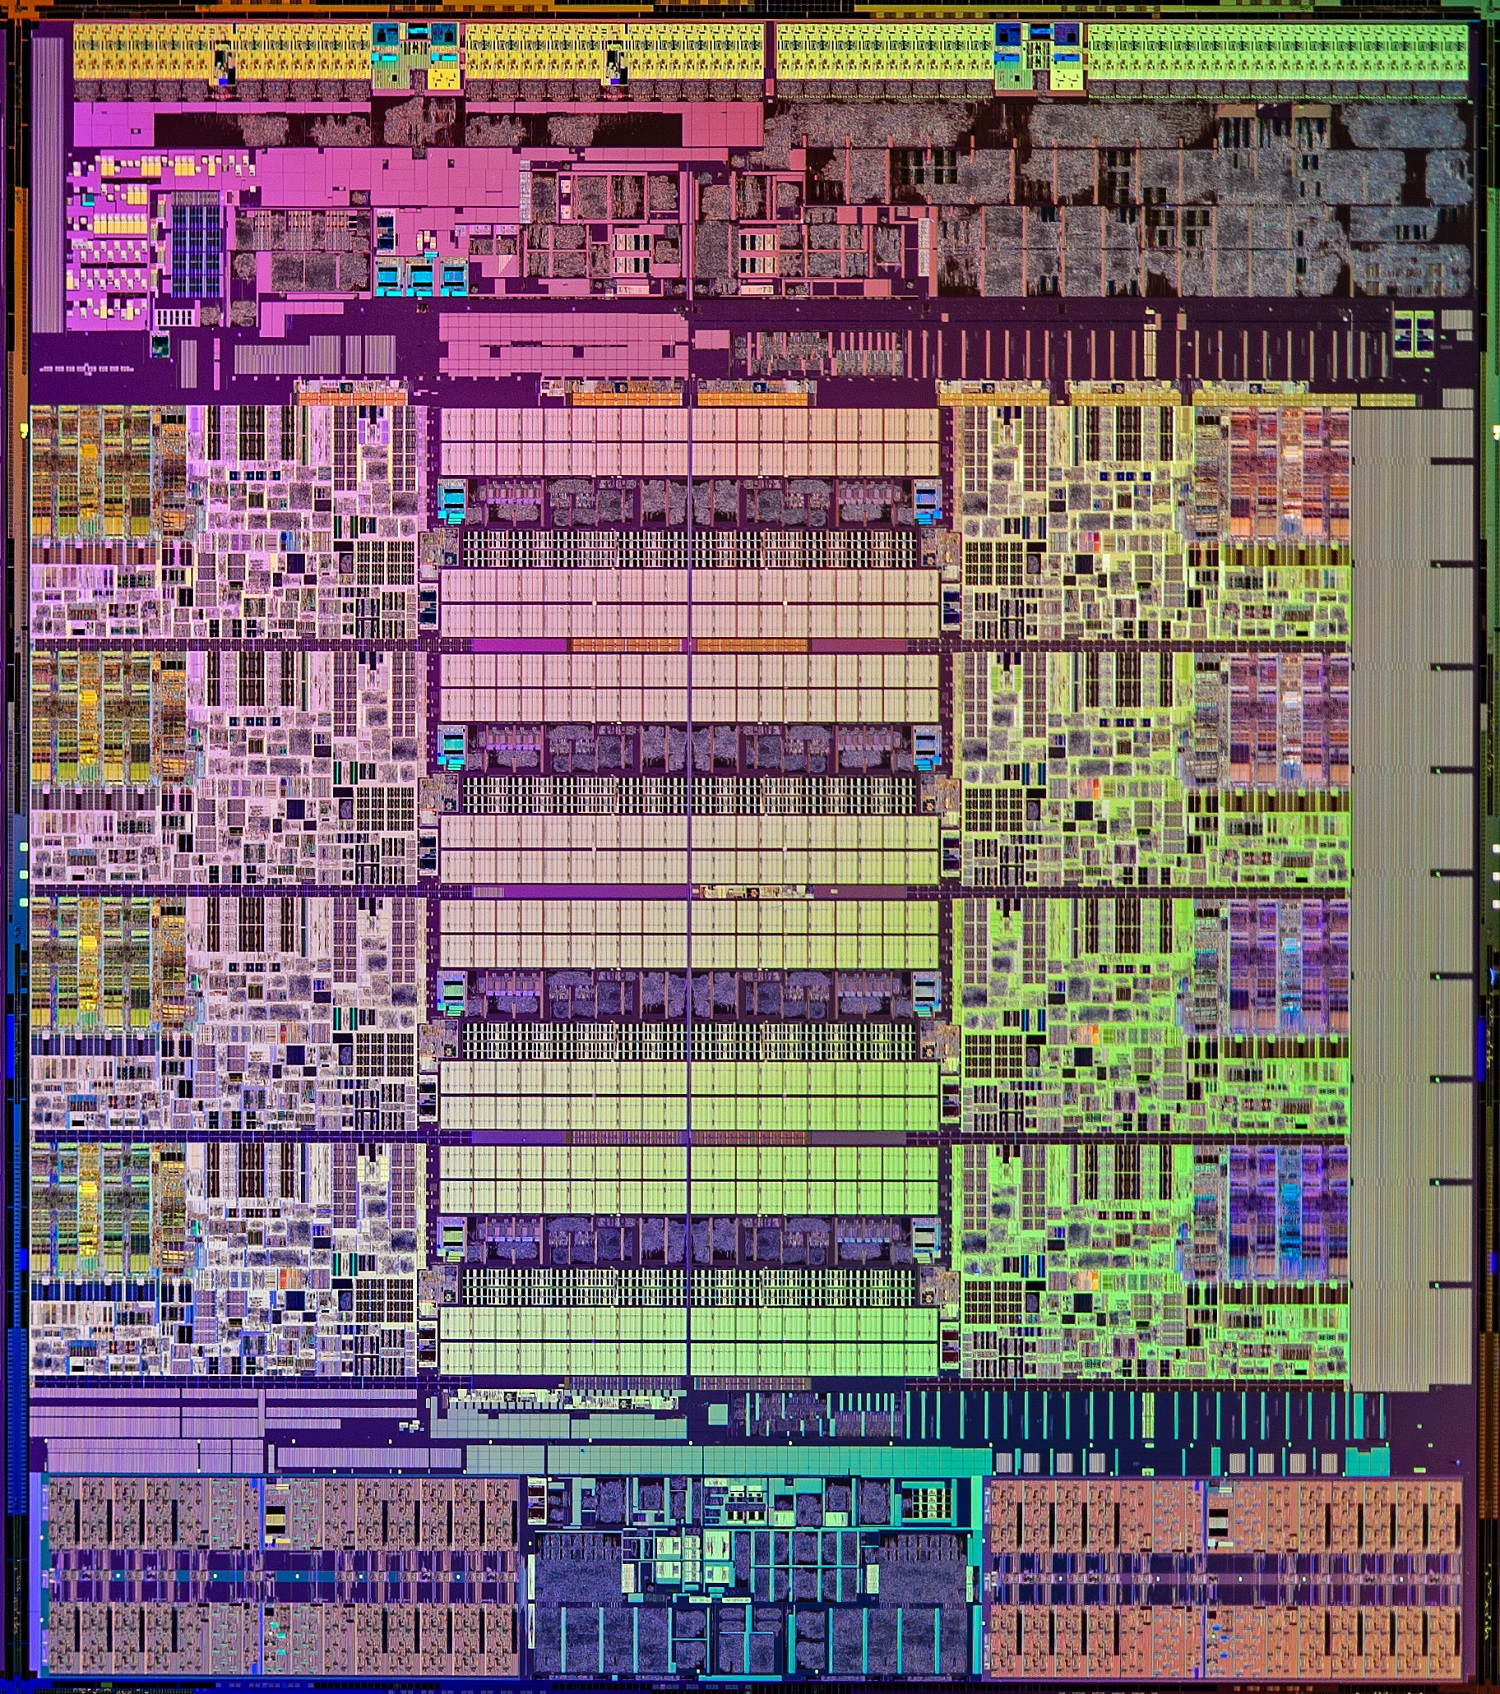 Intel Haswell-E Die